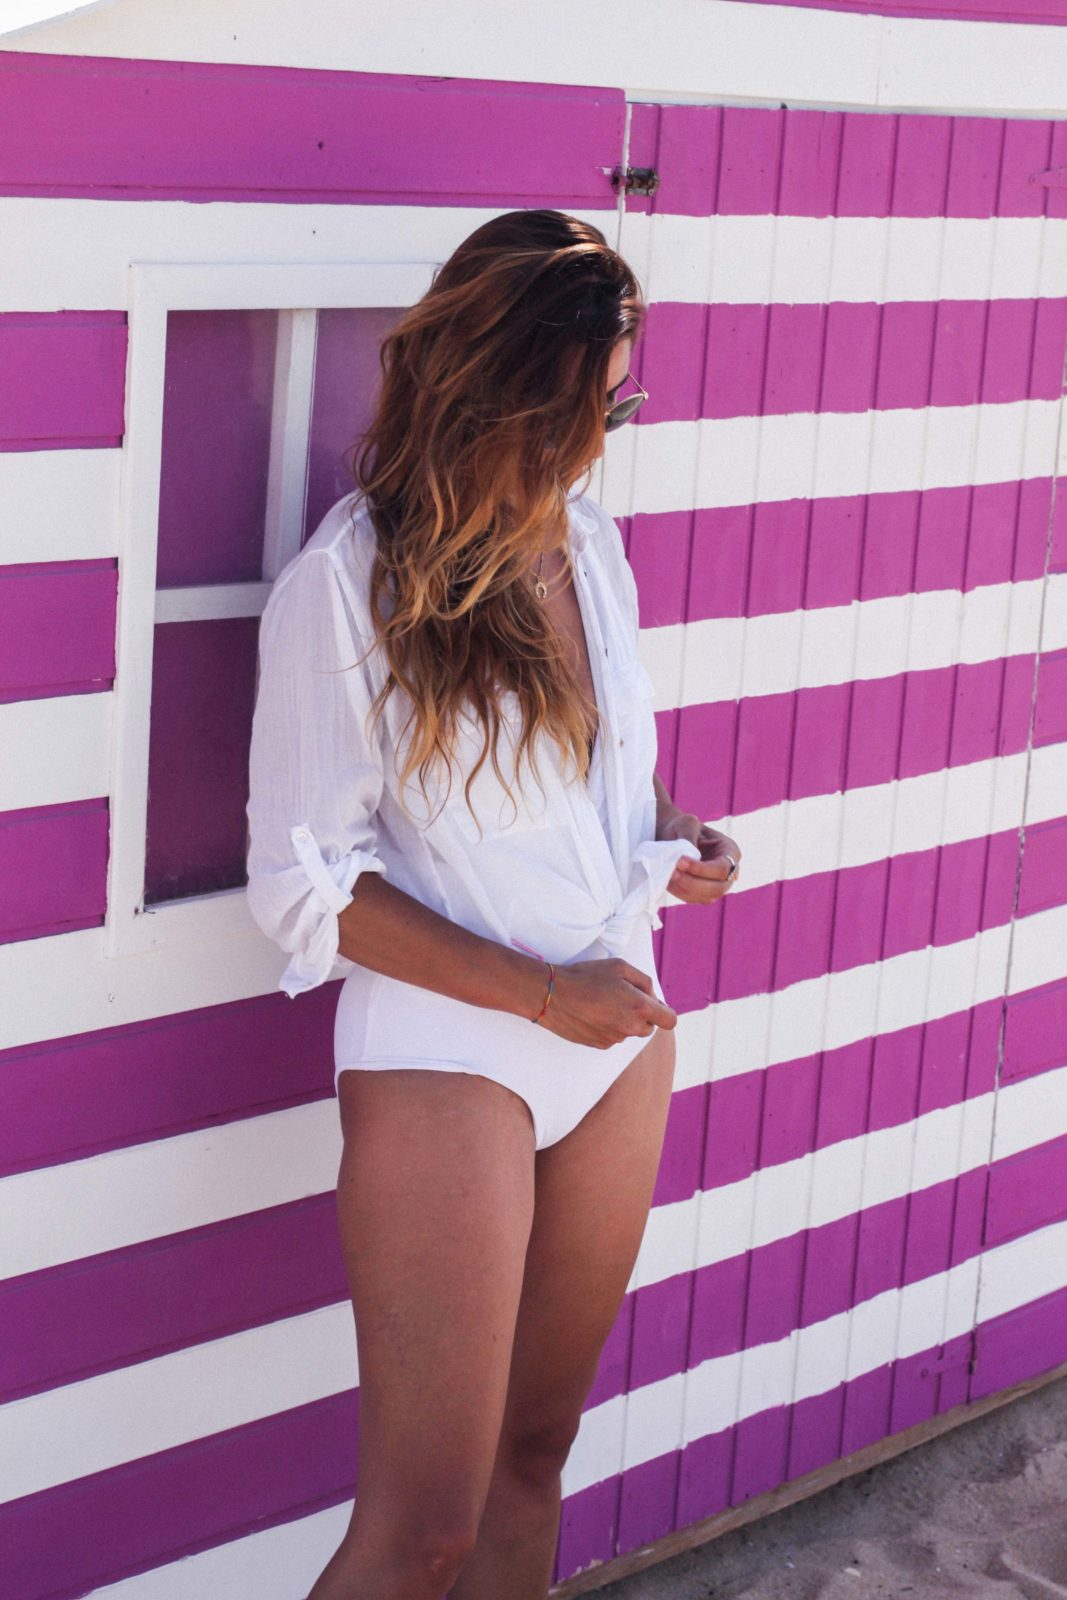 swimsuit_white_shirt_beach_comporta_carvalho_portugal_alentejo_trip-18